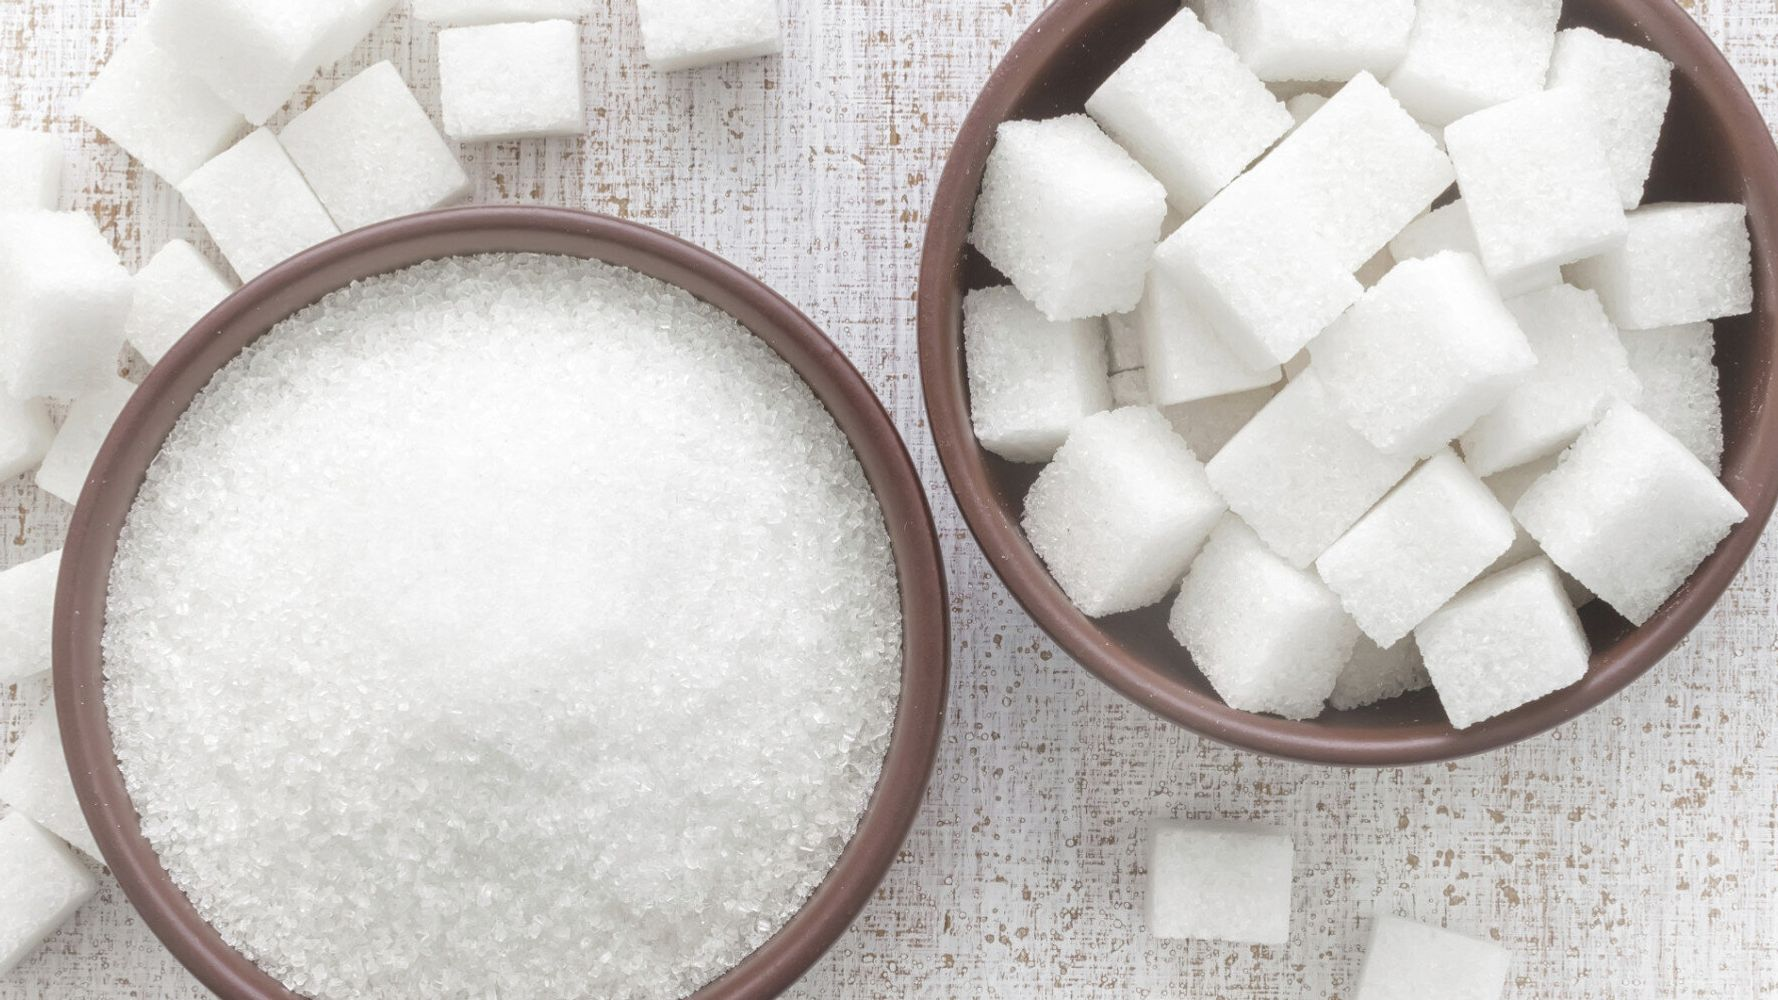 Is Sugar As Addictive As Certain Drugs?